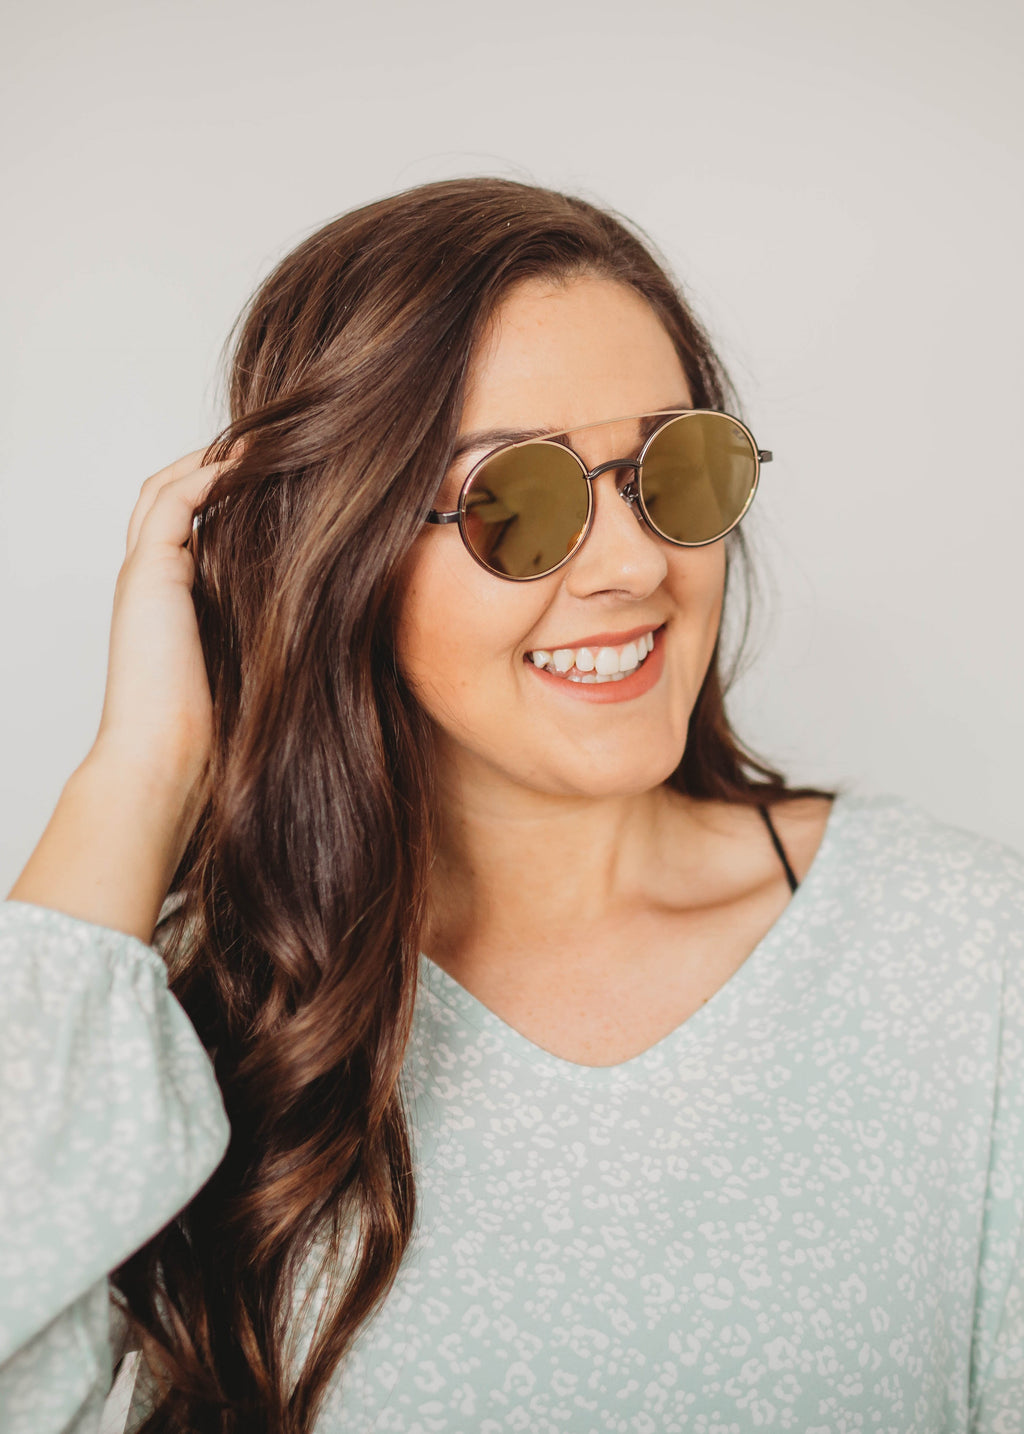 Moonlight Beach Dreams Brown & Gold Sunglasses